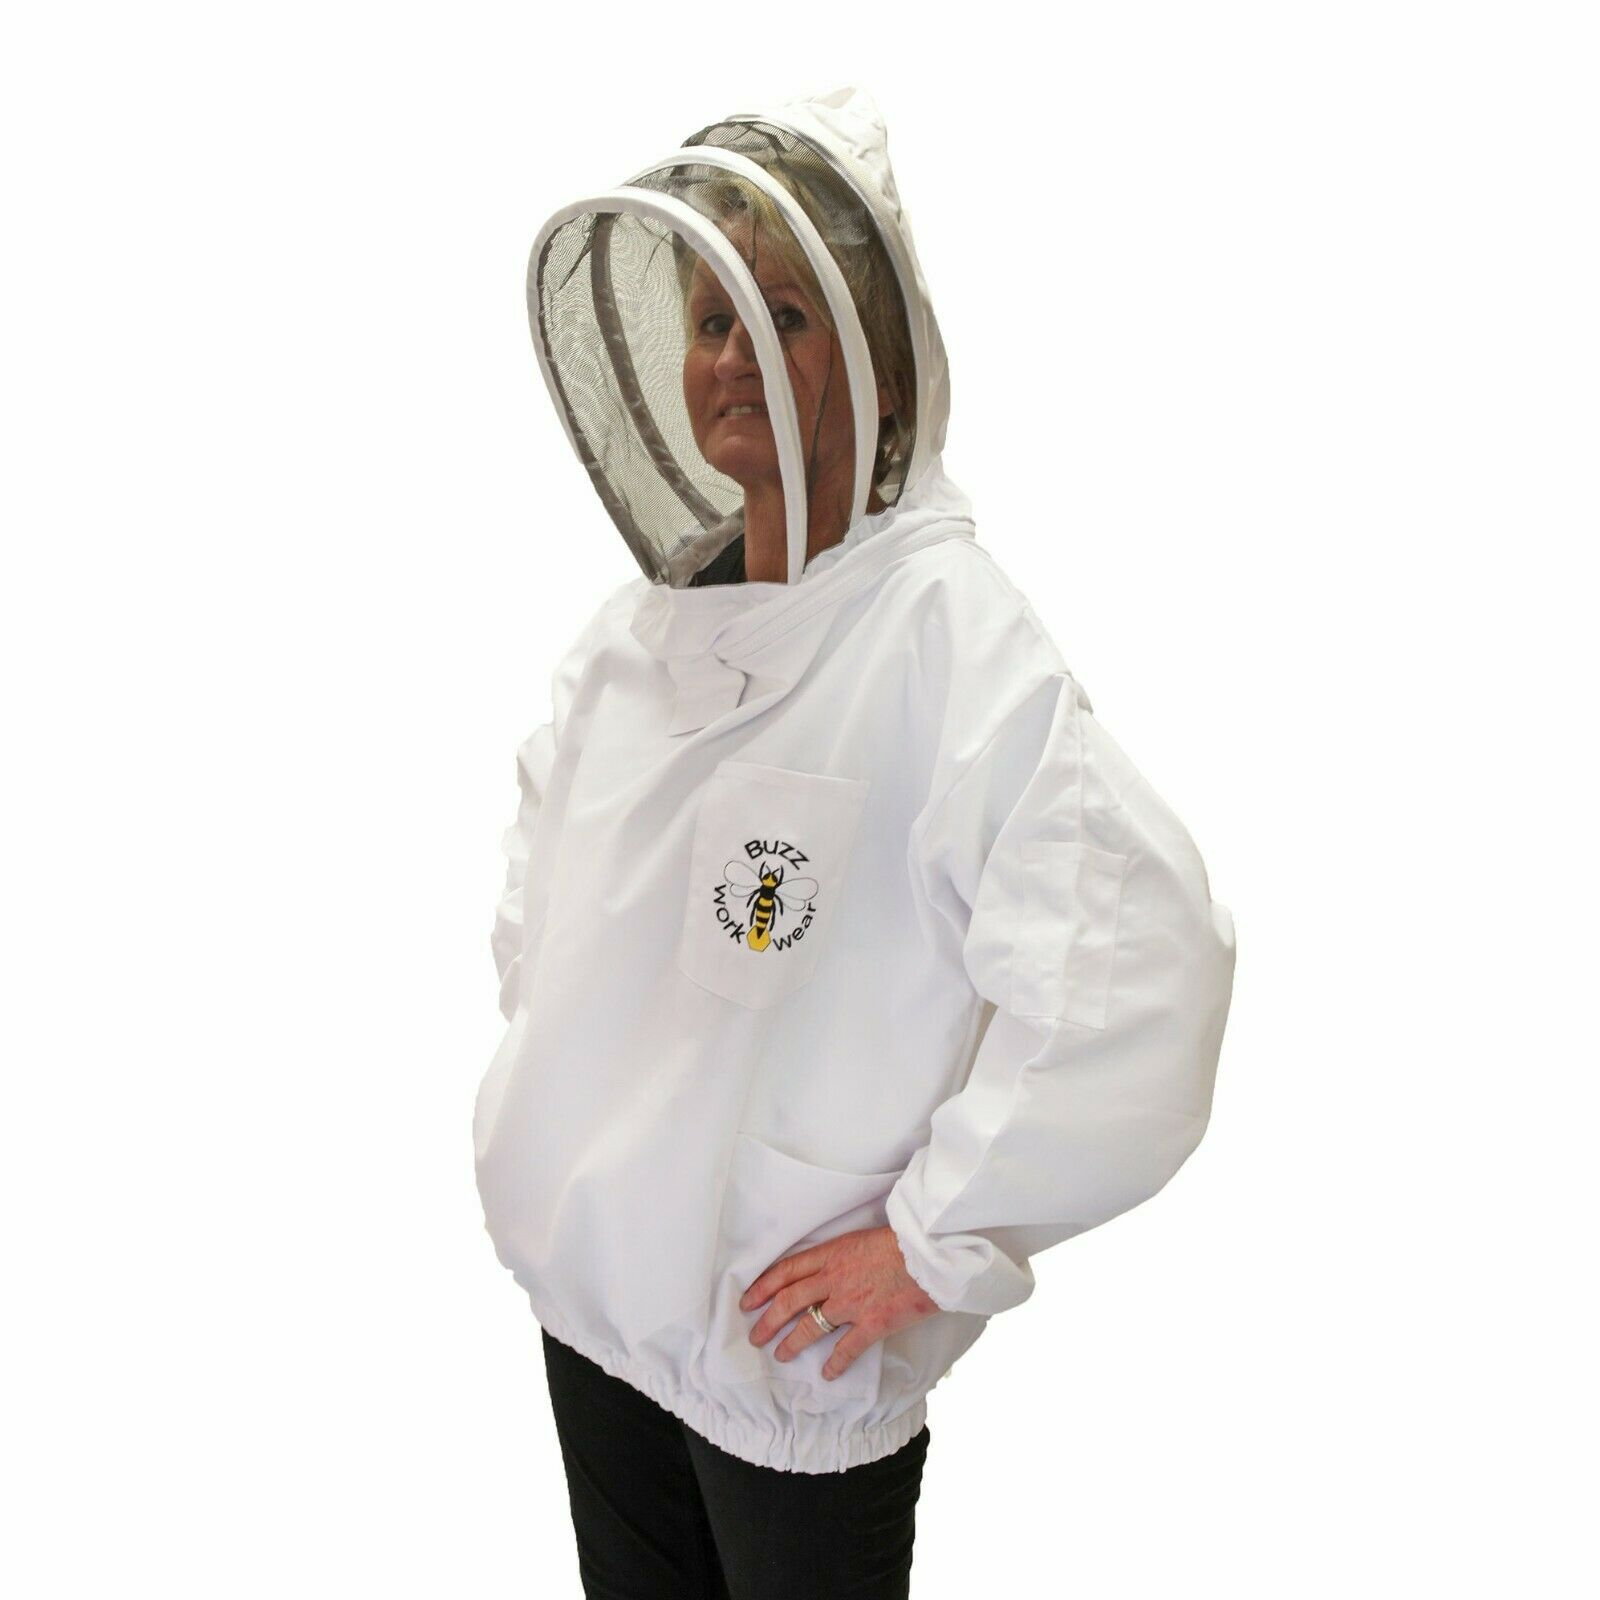 Childrens Beekeeping Bee Jacket/Tunic (fencing veil) - CHILDRENS LARGE